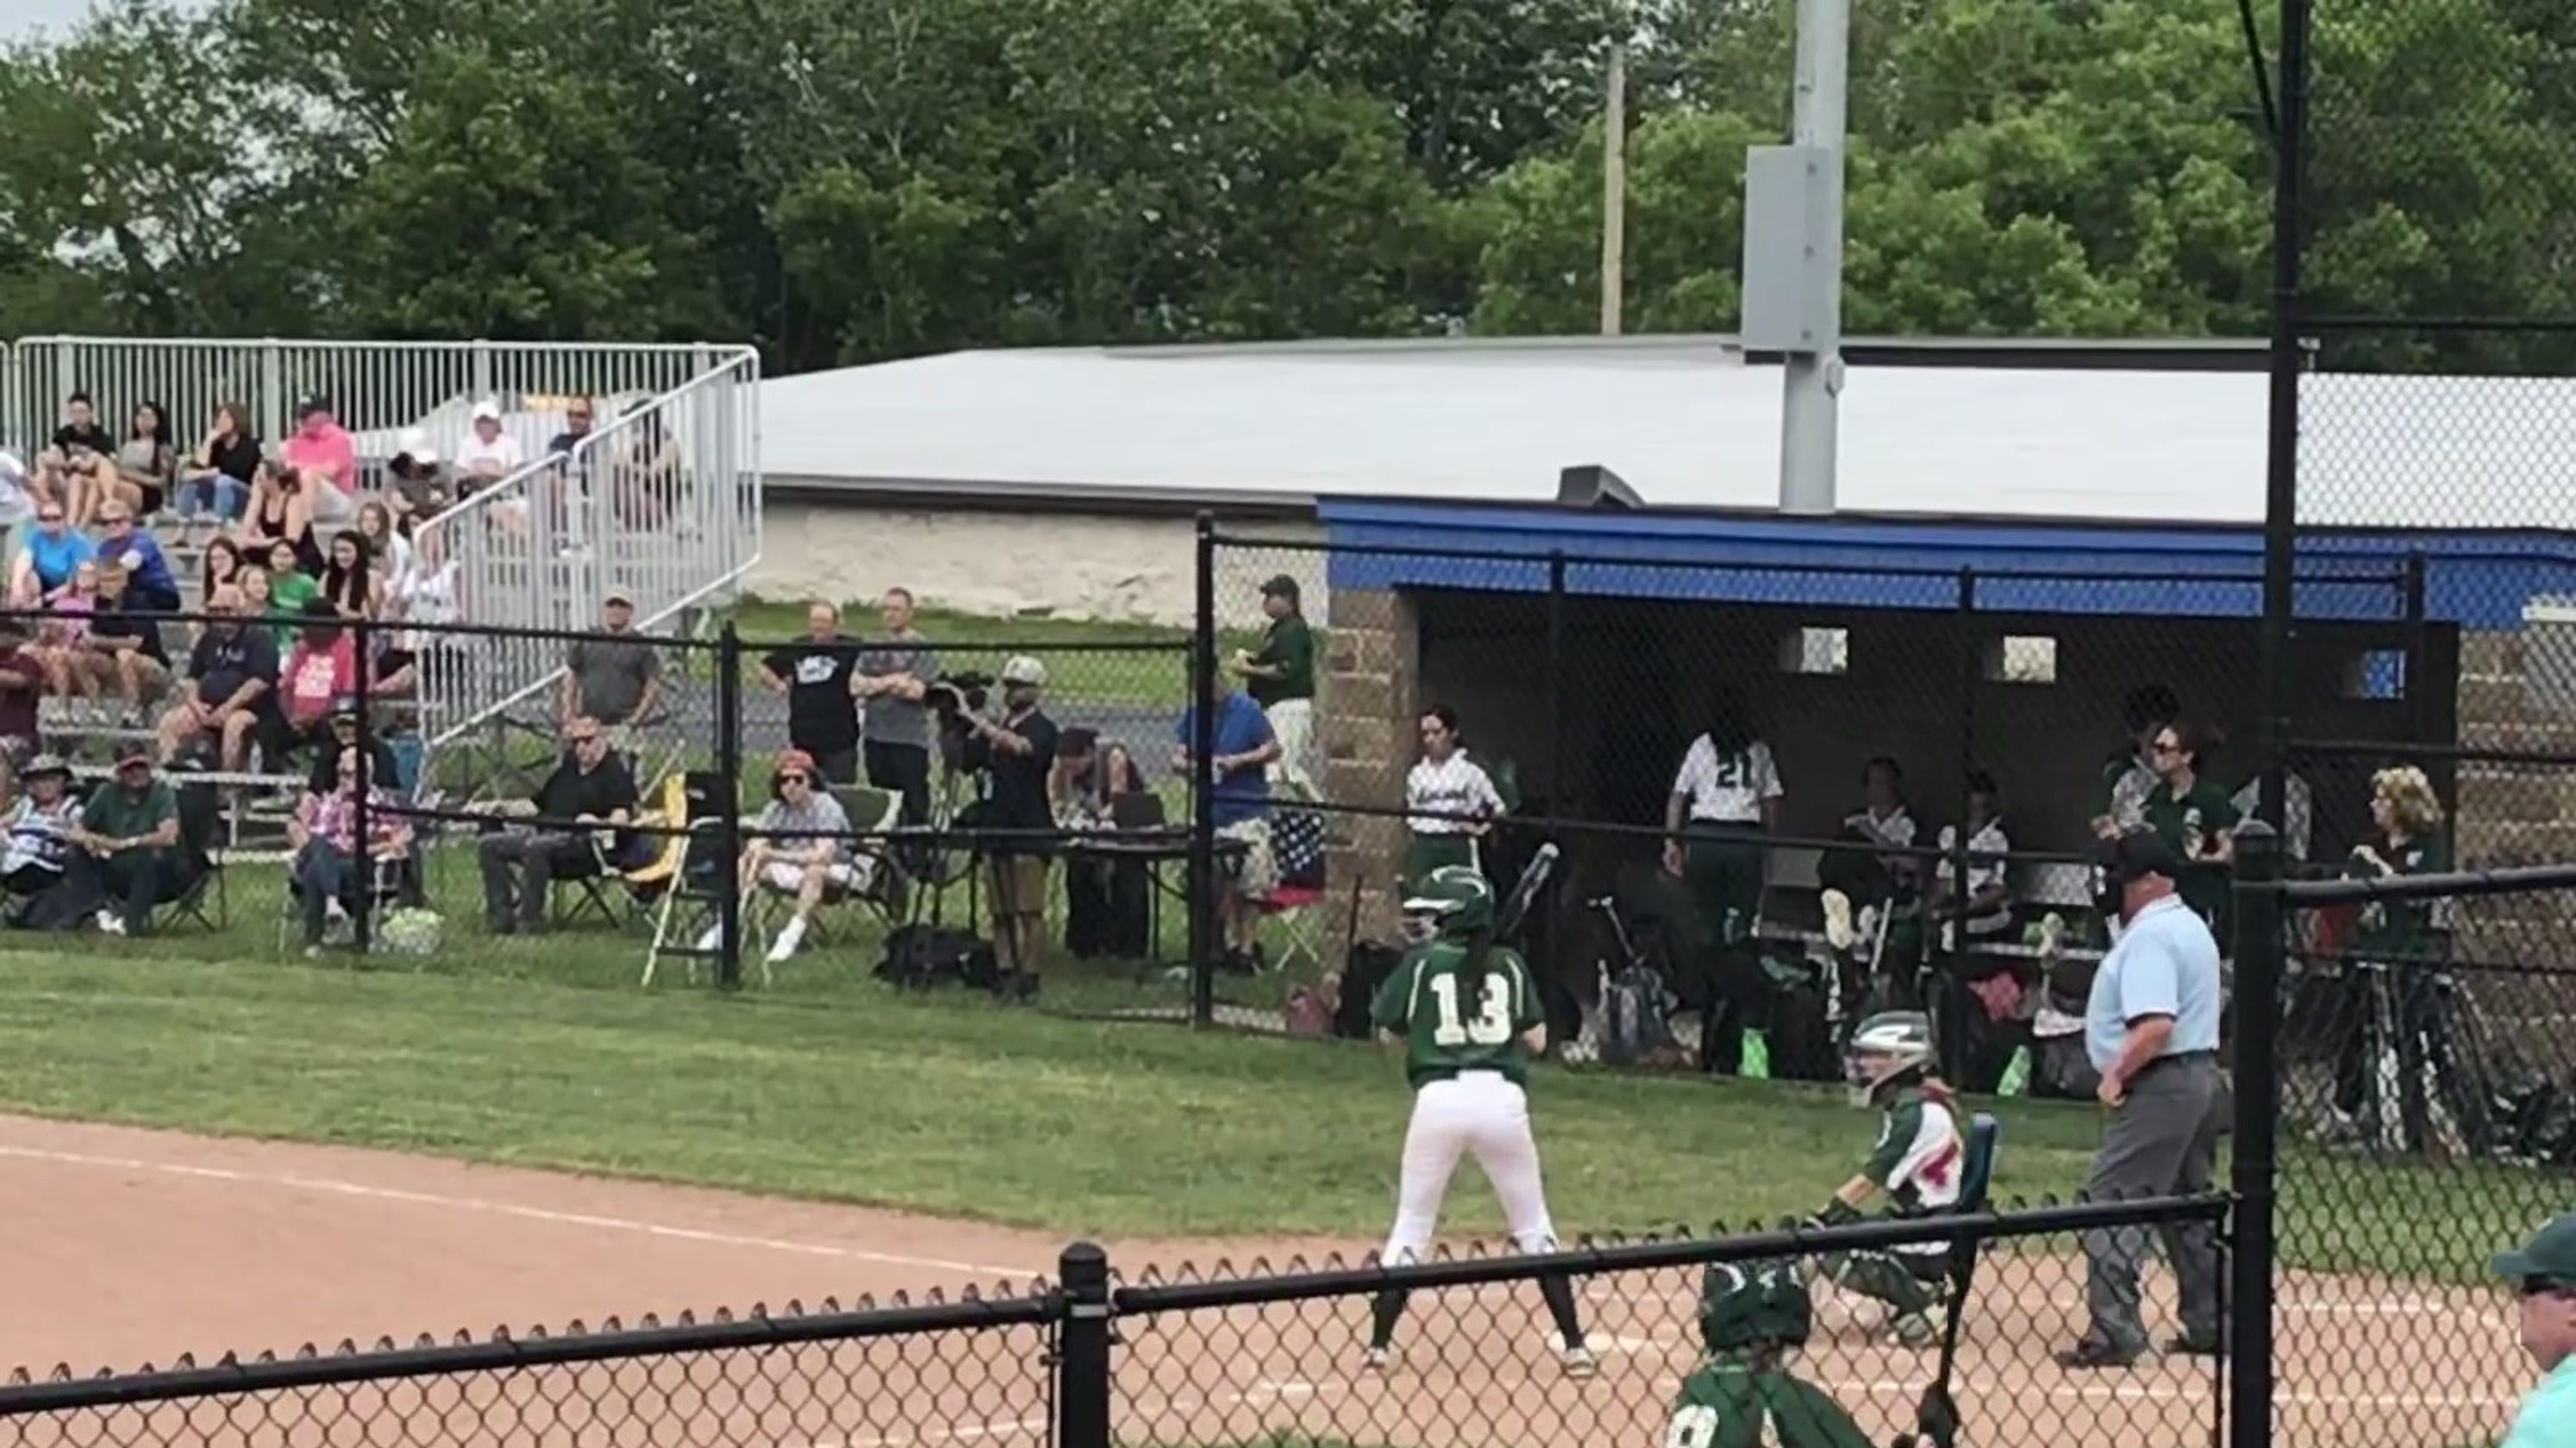 Vestal softball falls to Minisink Valley in Class A state playoffs